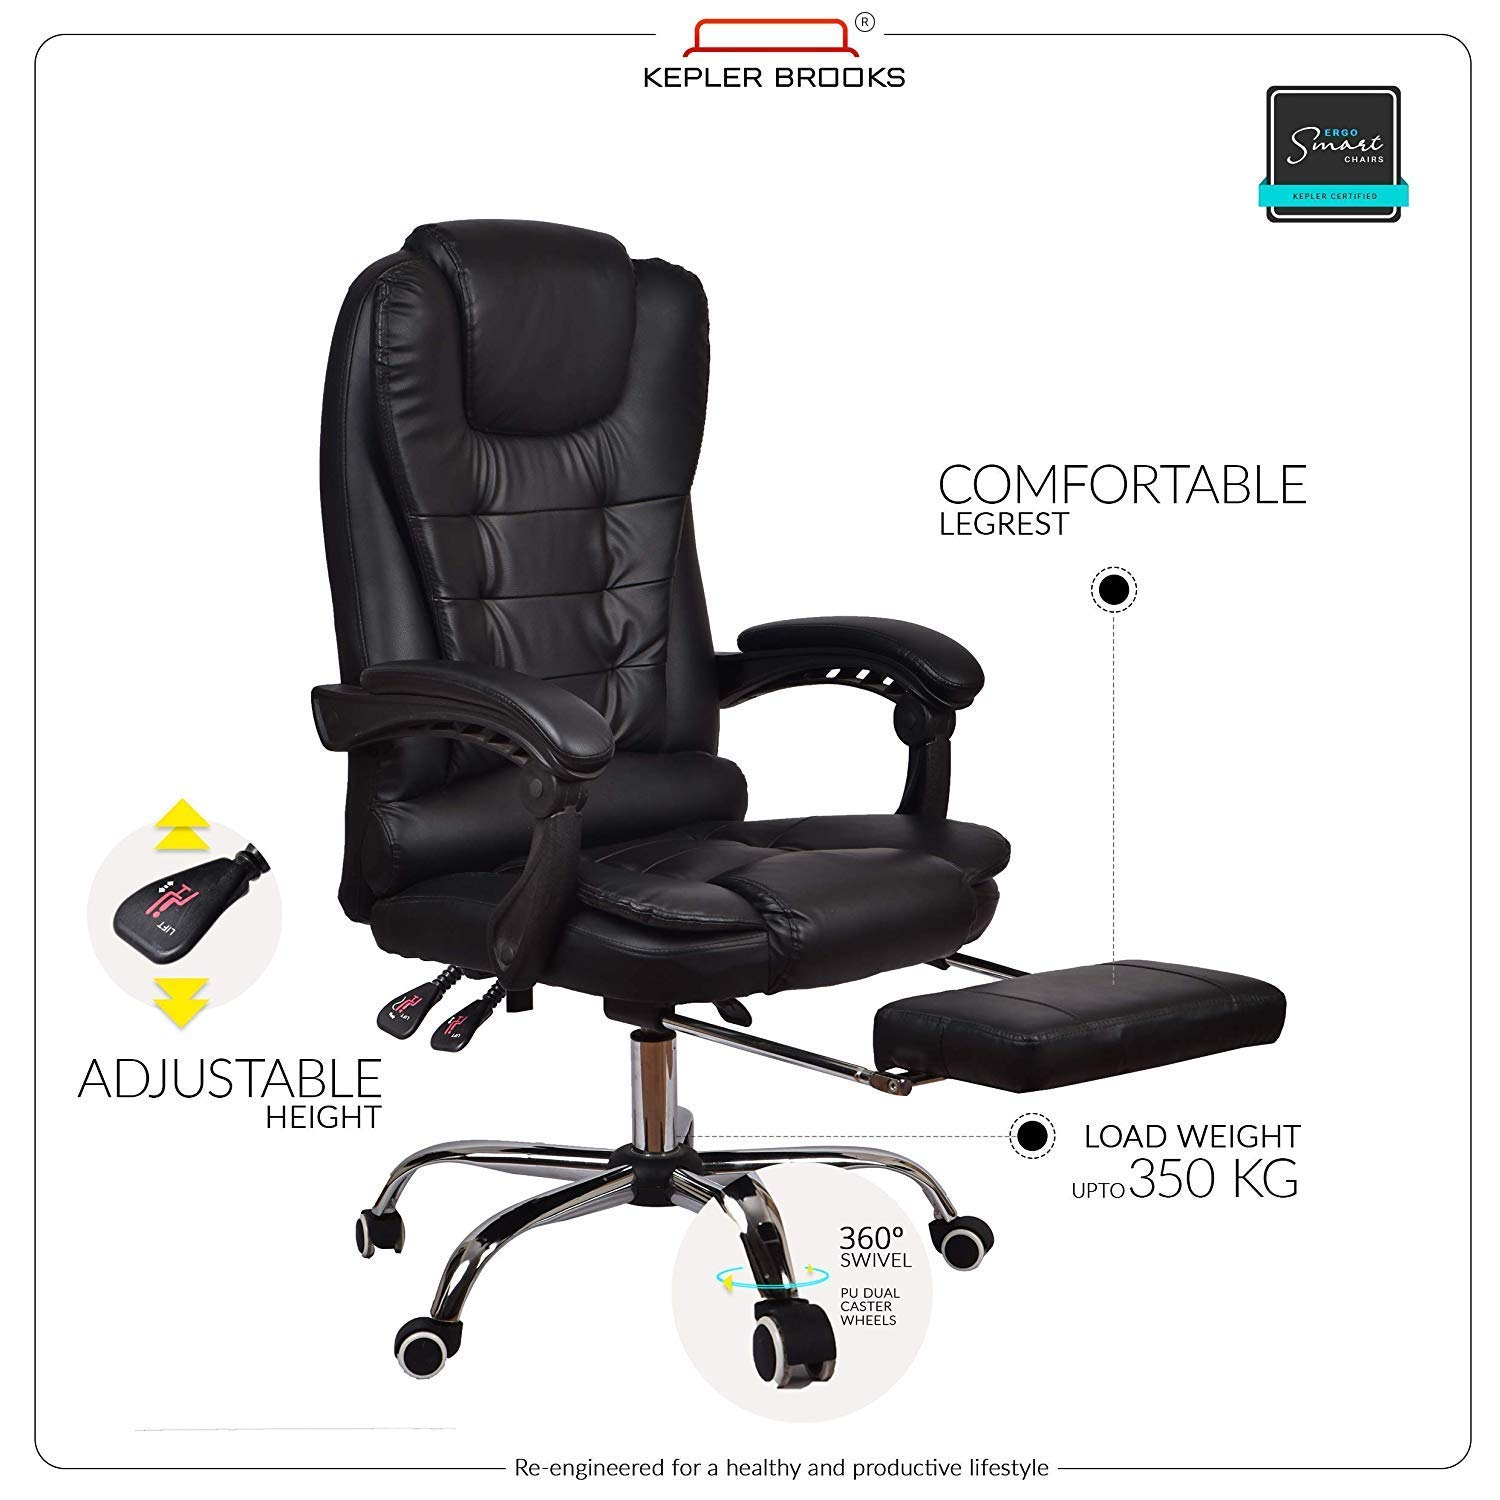 Kepler Brooks Italia High Back Reclining Office Chair with LegRest review